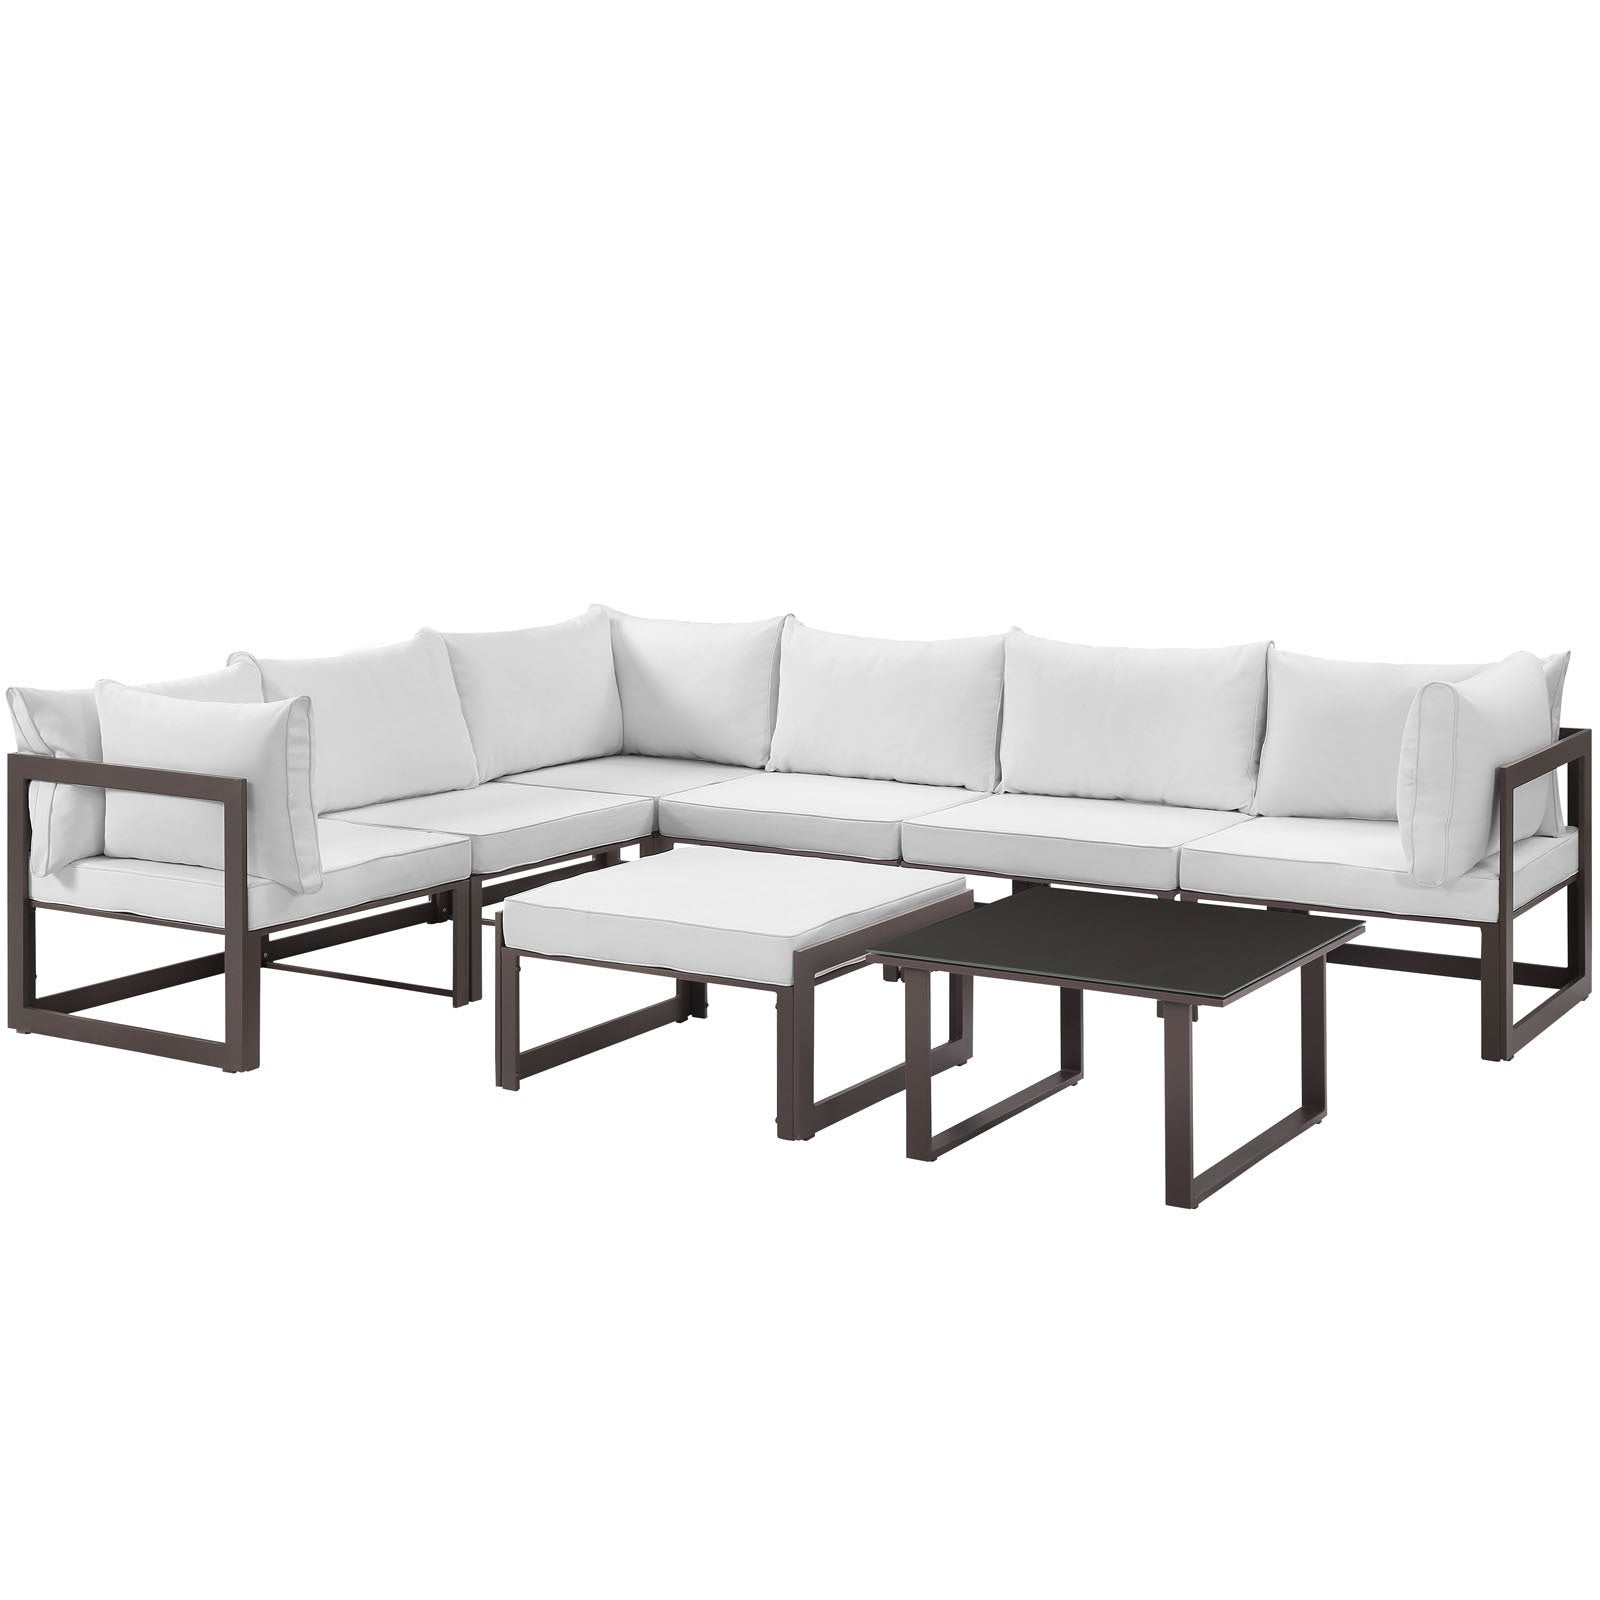 Chance 8 piece Outdoor Patio Sectional Sofa Set